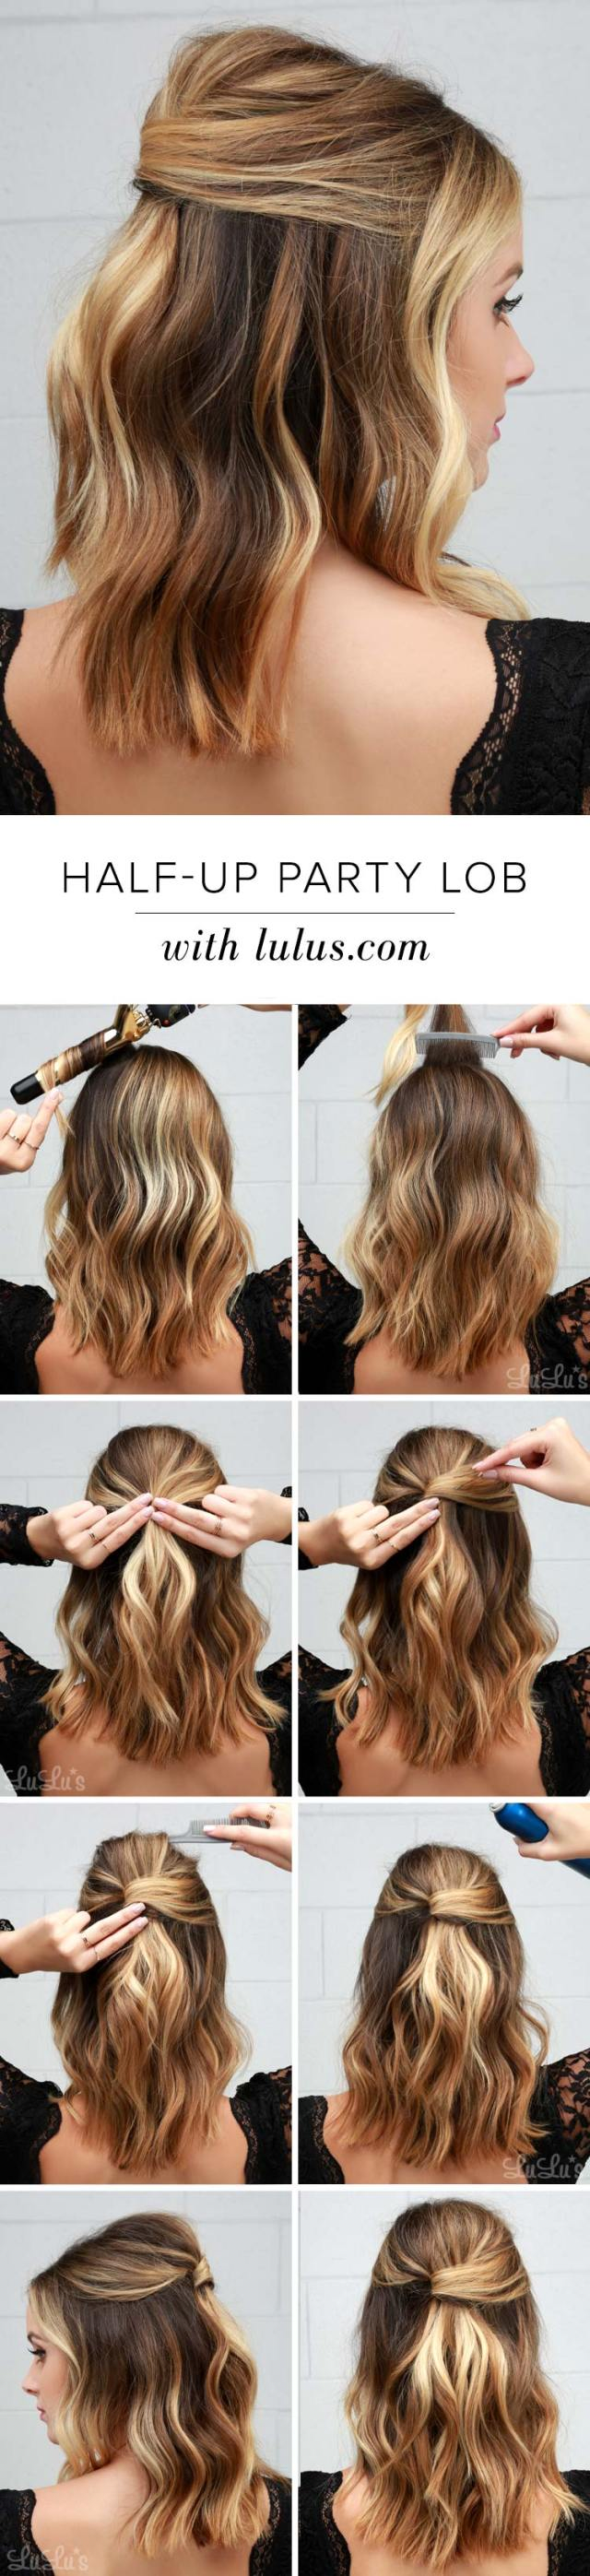 15 super easy half-up hairstyle tutorials you have to try